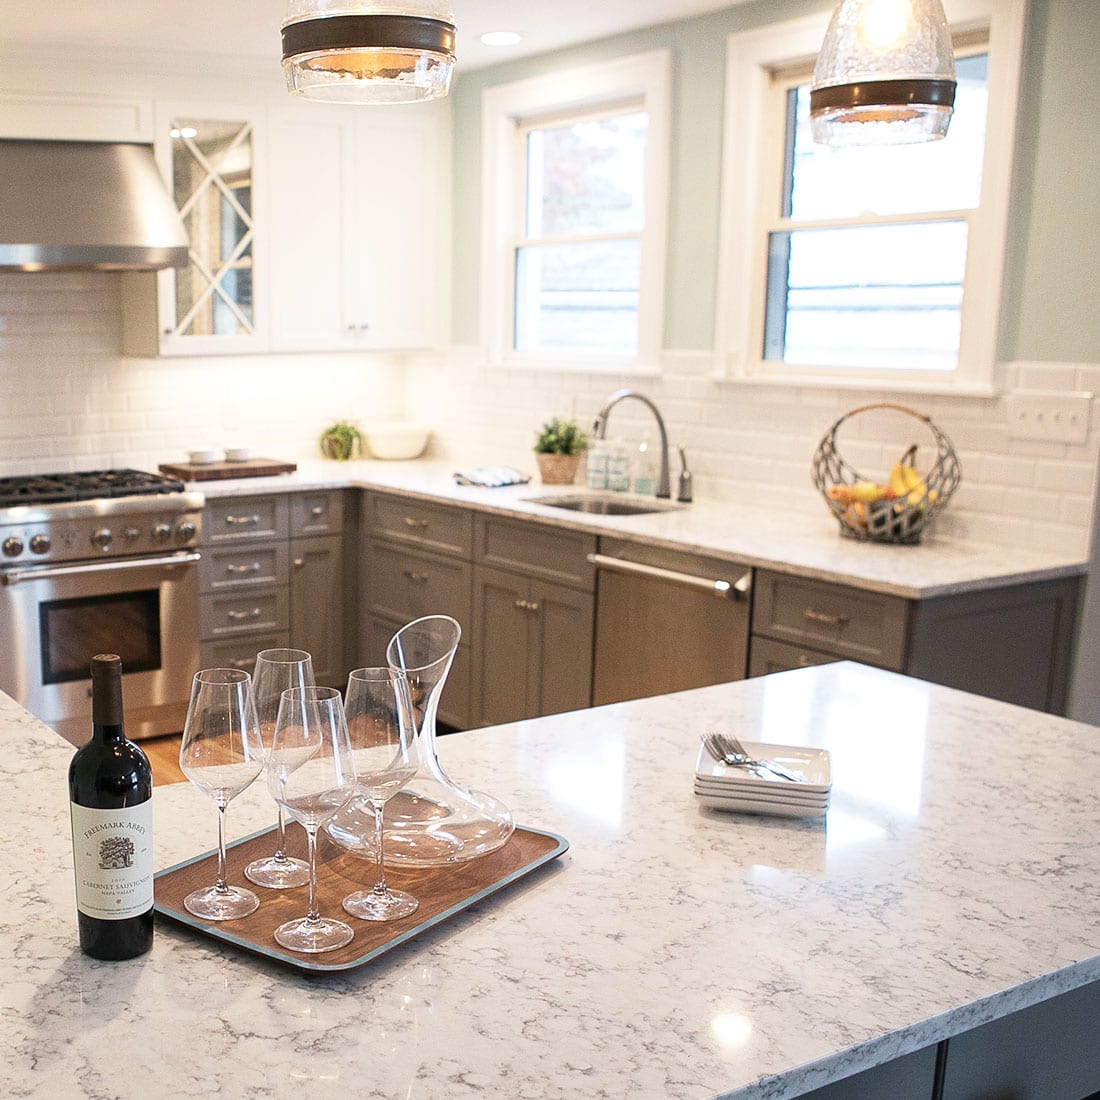 Marble countertop in grey and white renovated kitchen